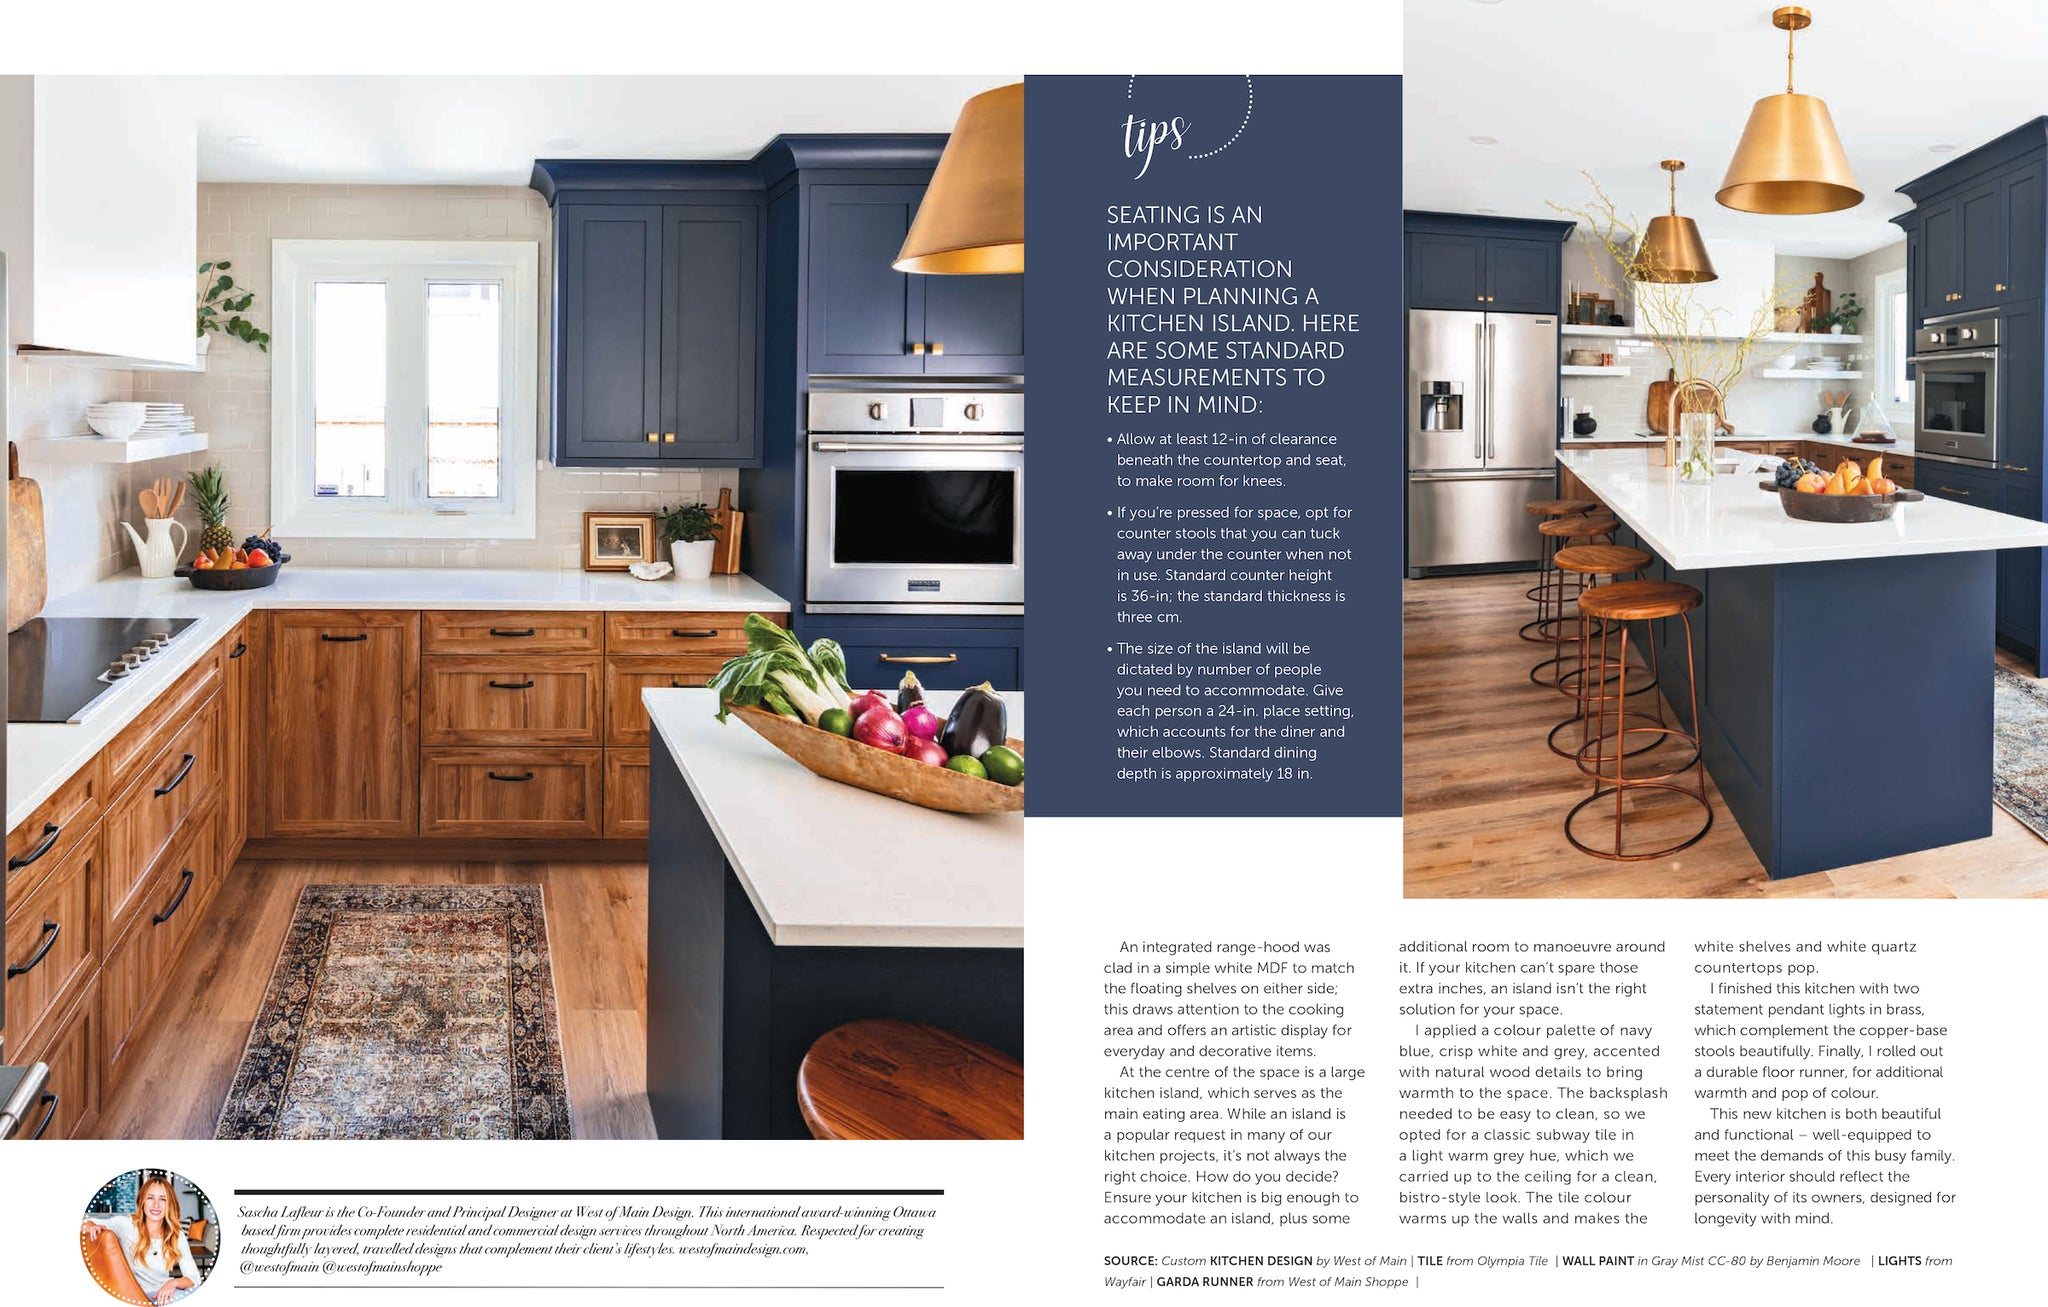 Two-toned, navy and wood kitchen.